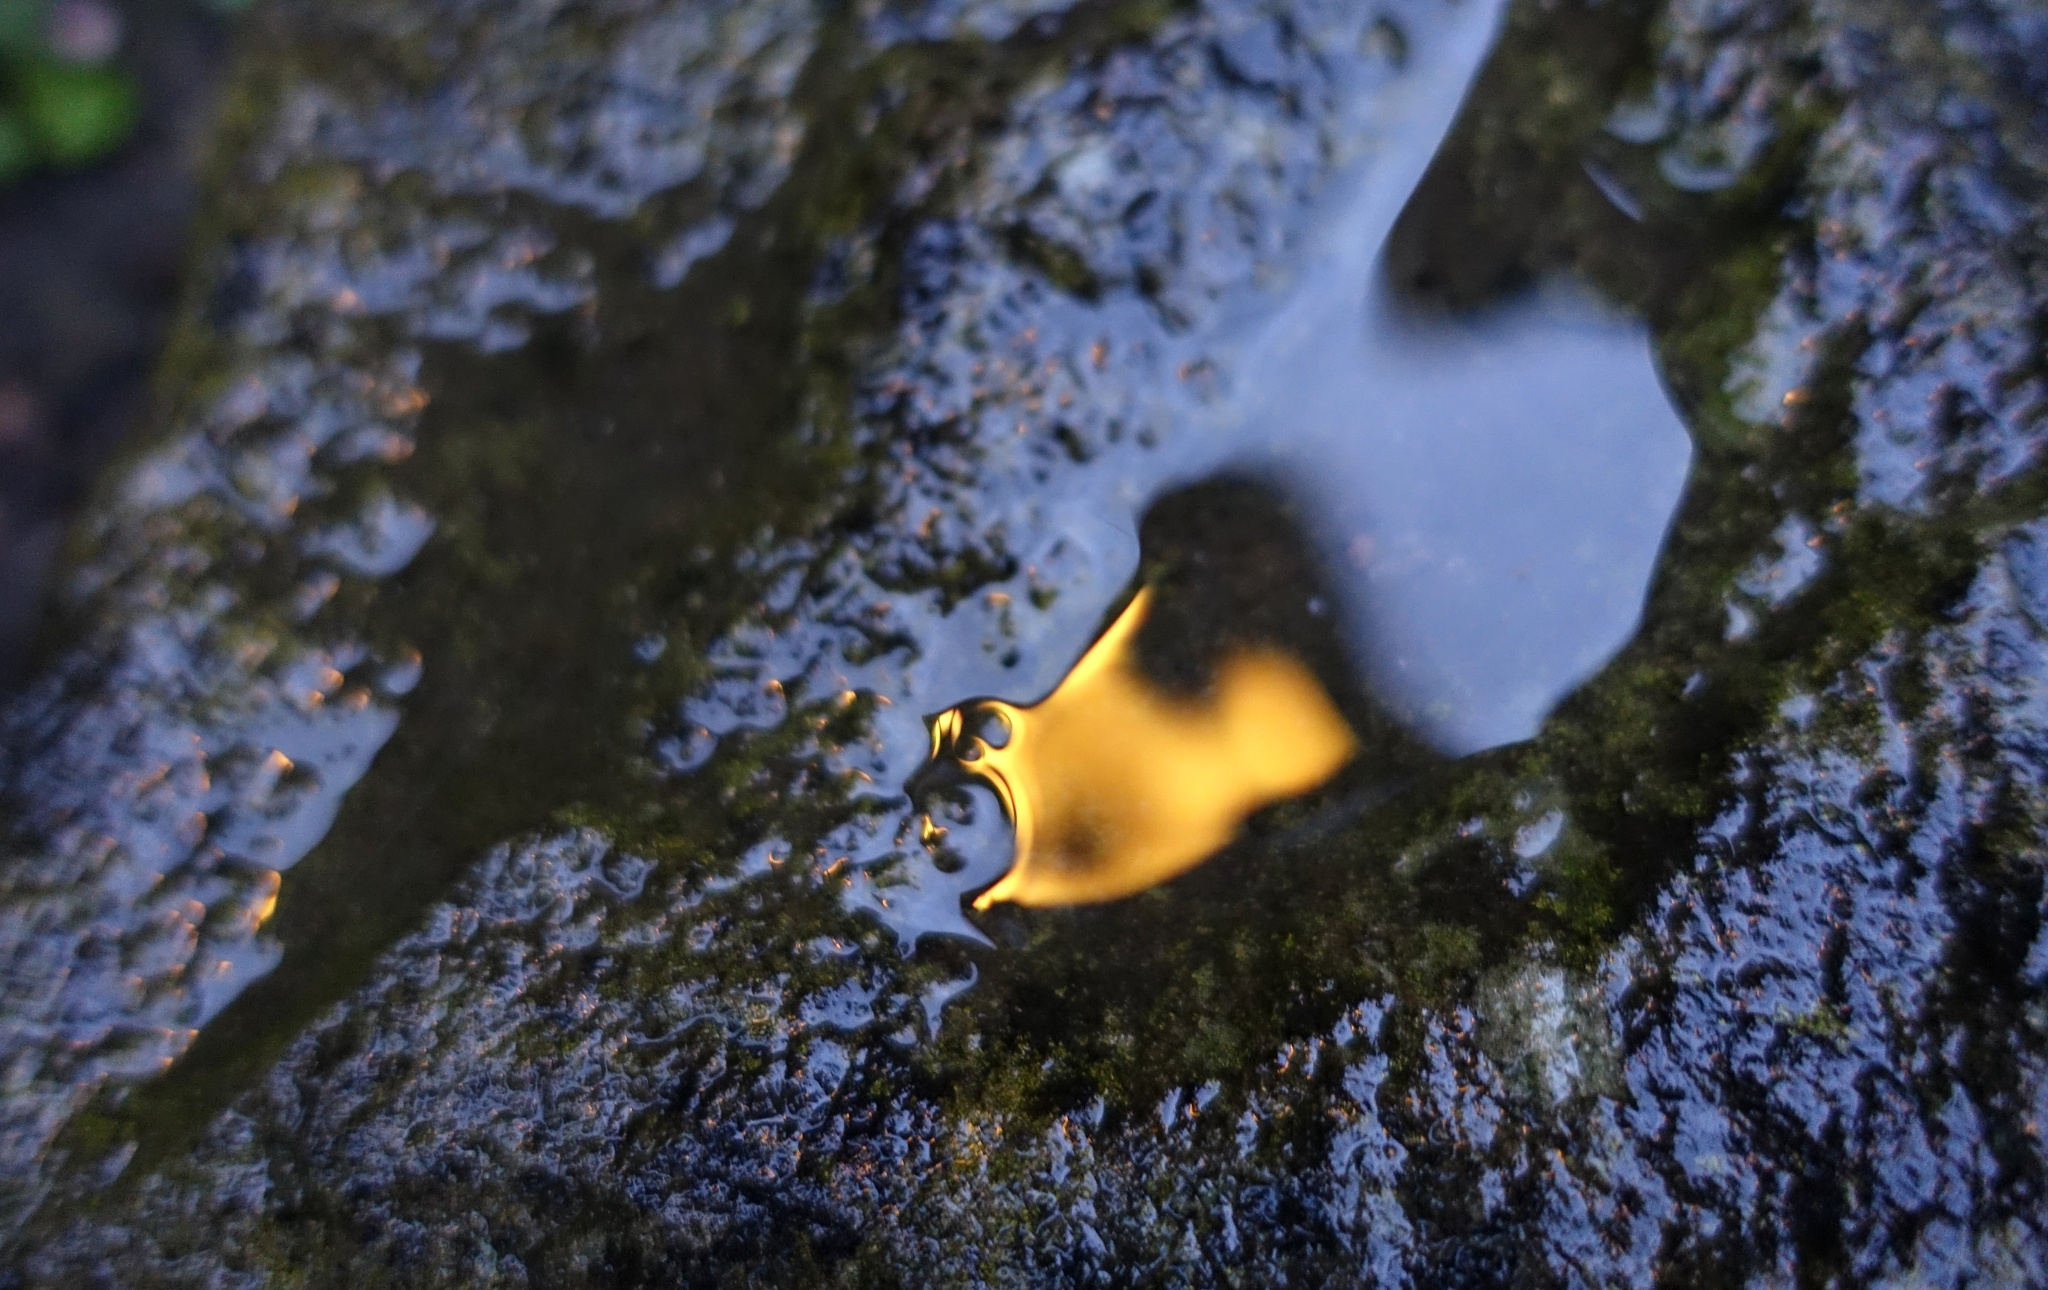 Light reflecting on a wet stone wall by kayThornton